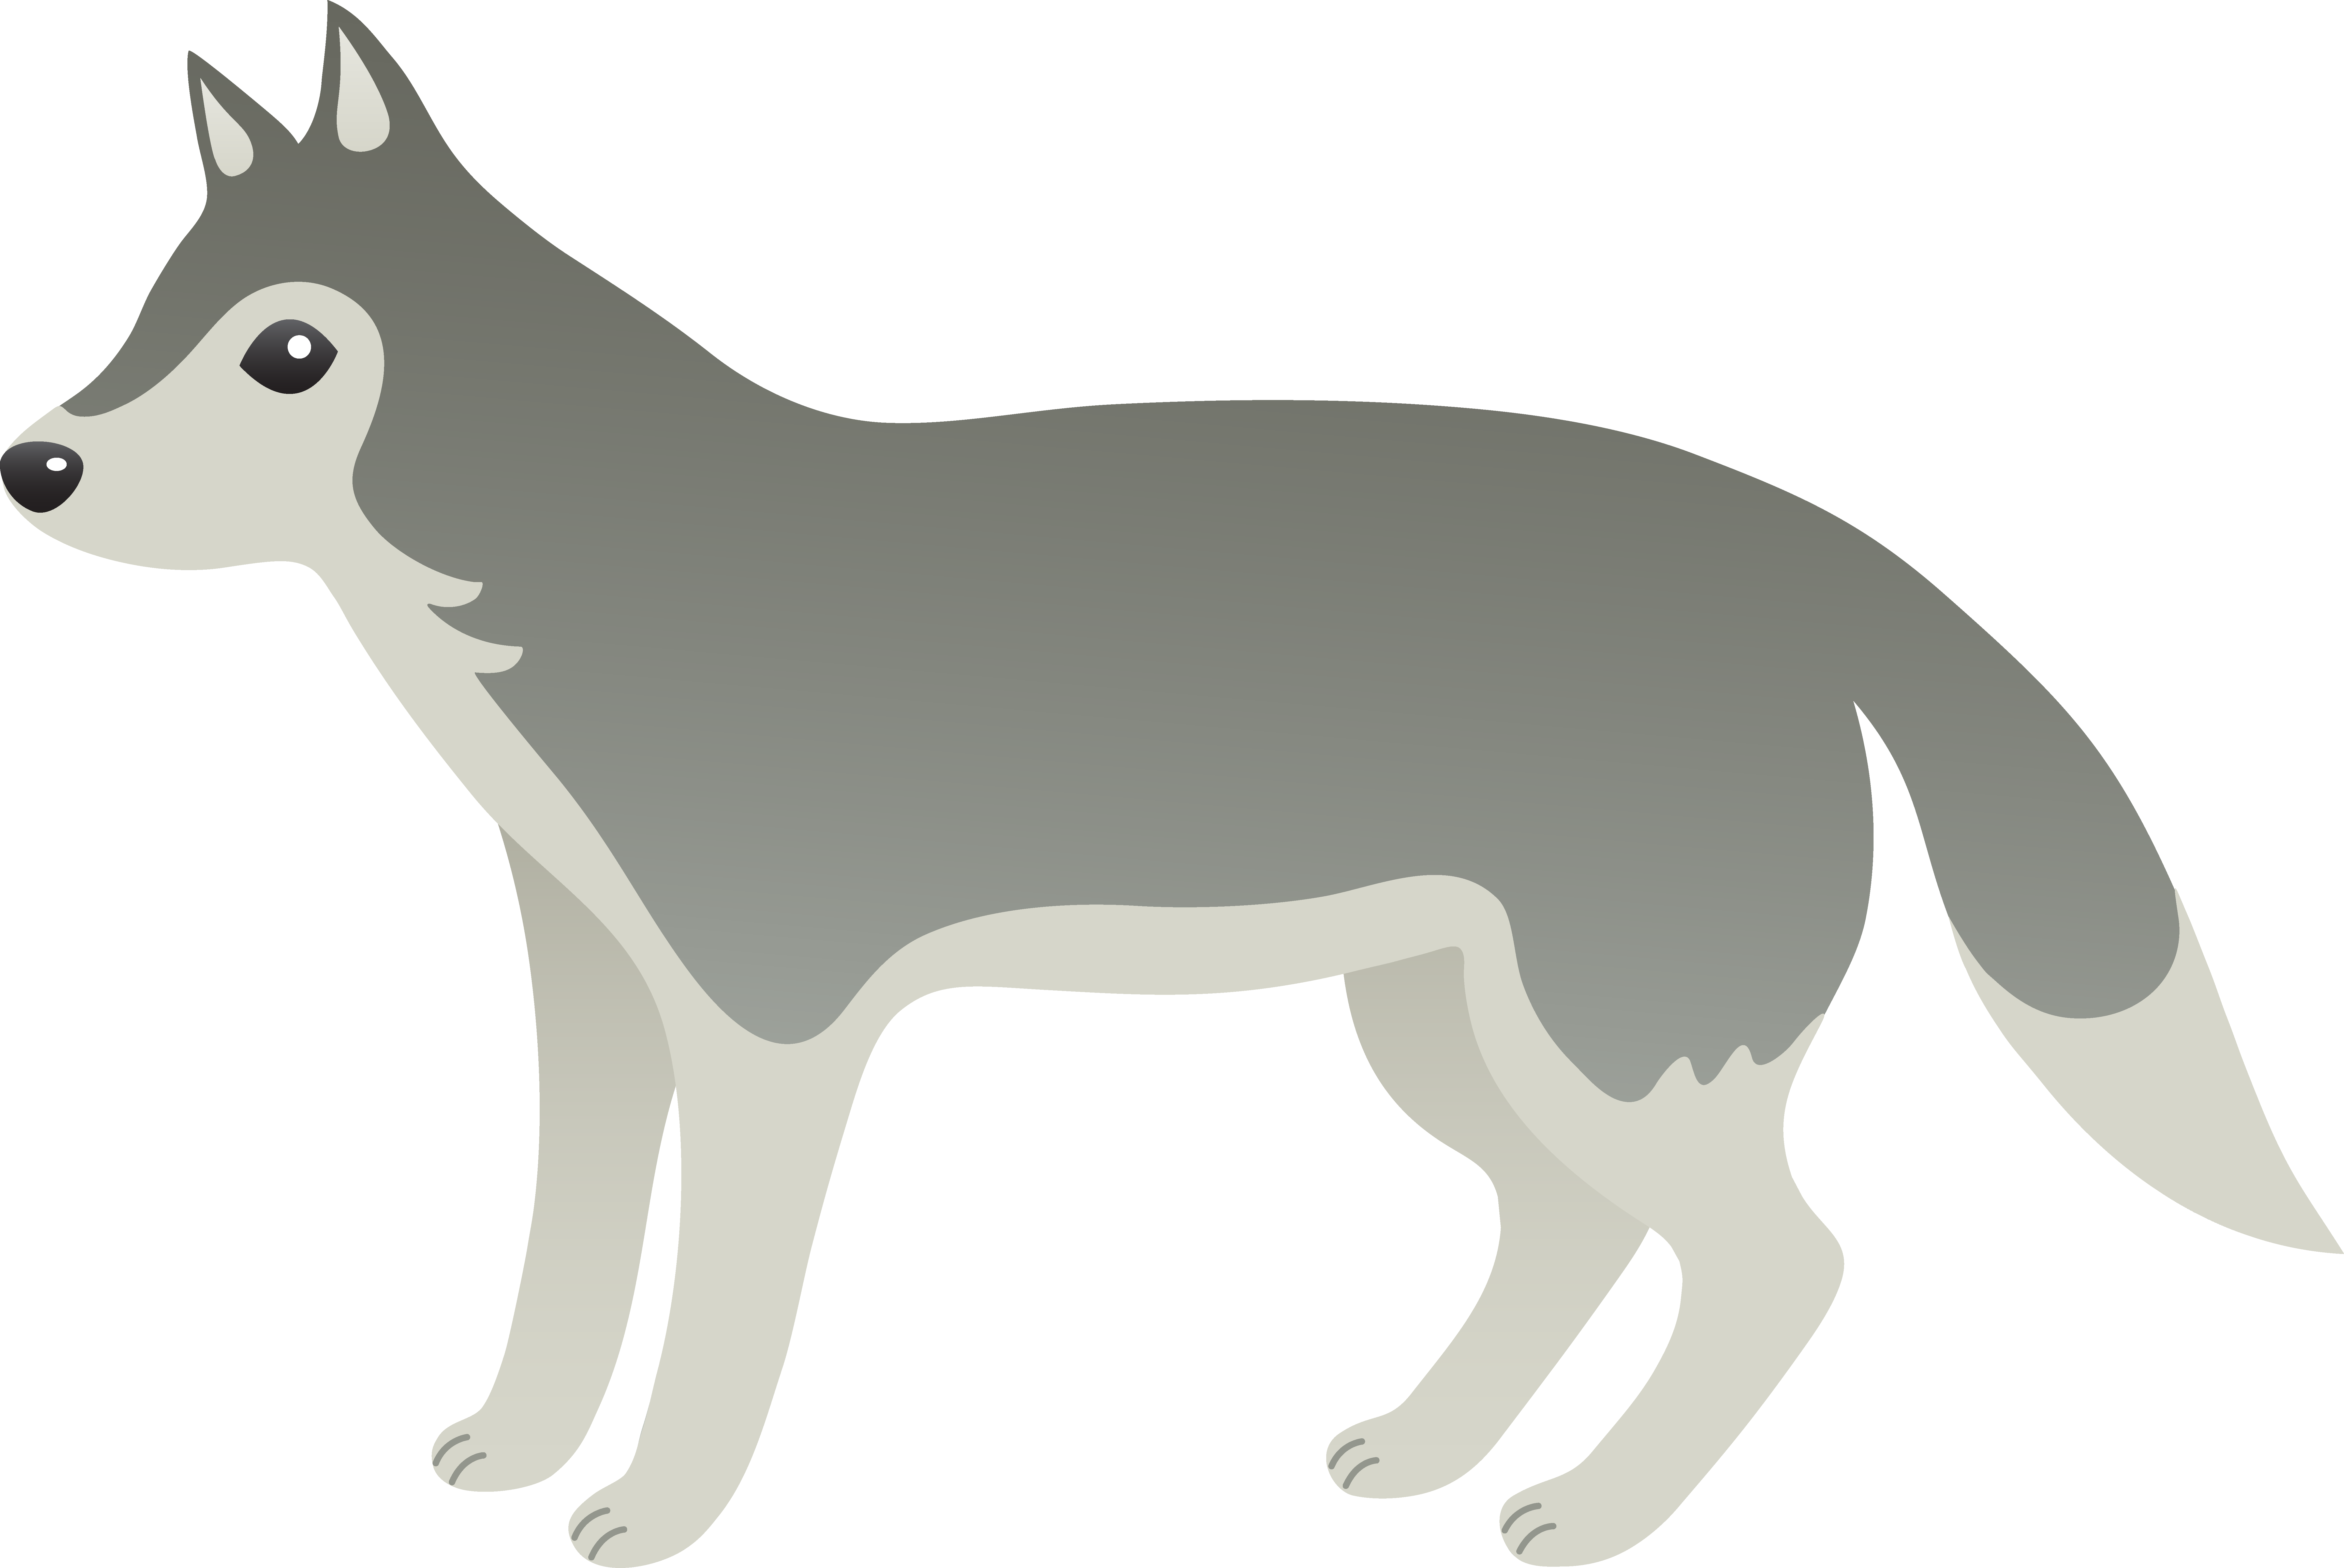 Wolf images free clipart clipart download Cute Grey Wolf - Free Clip Art clipart download